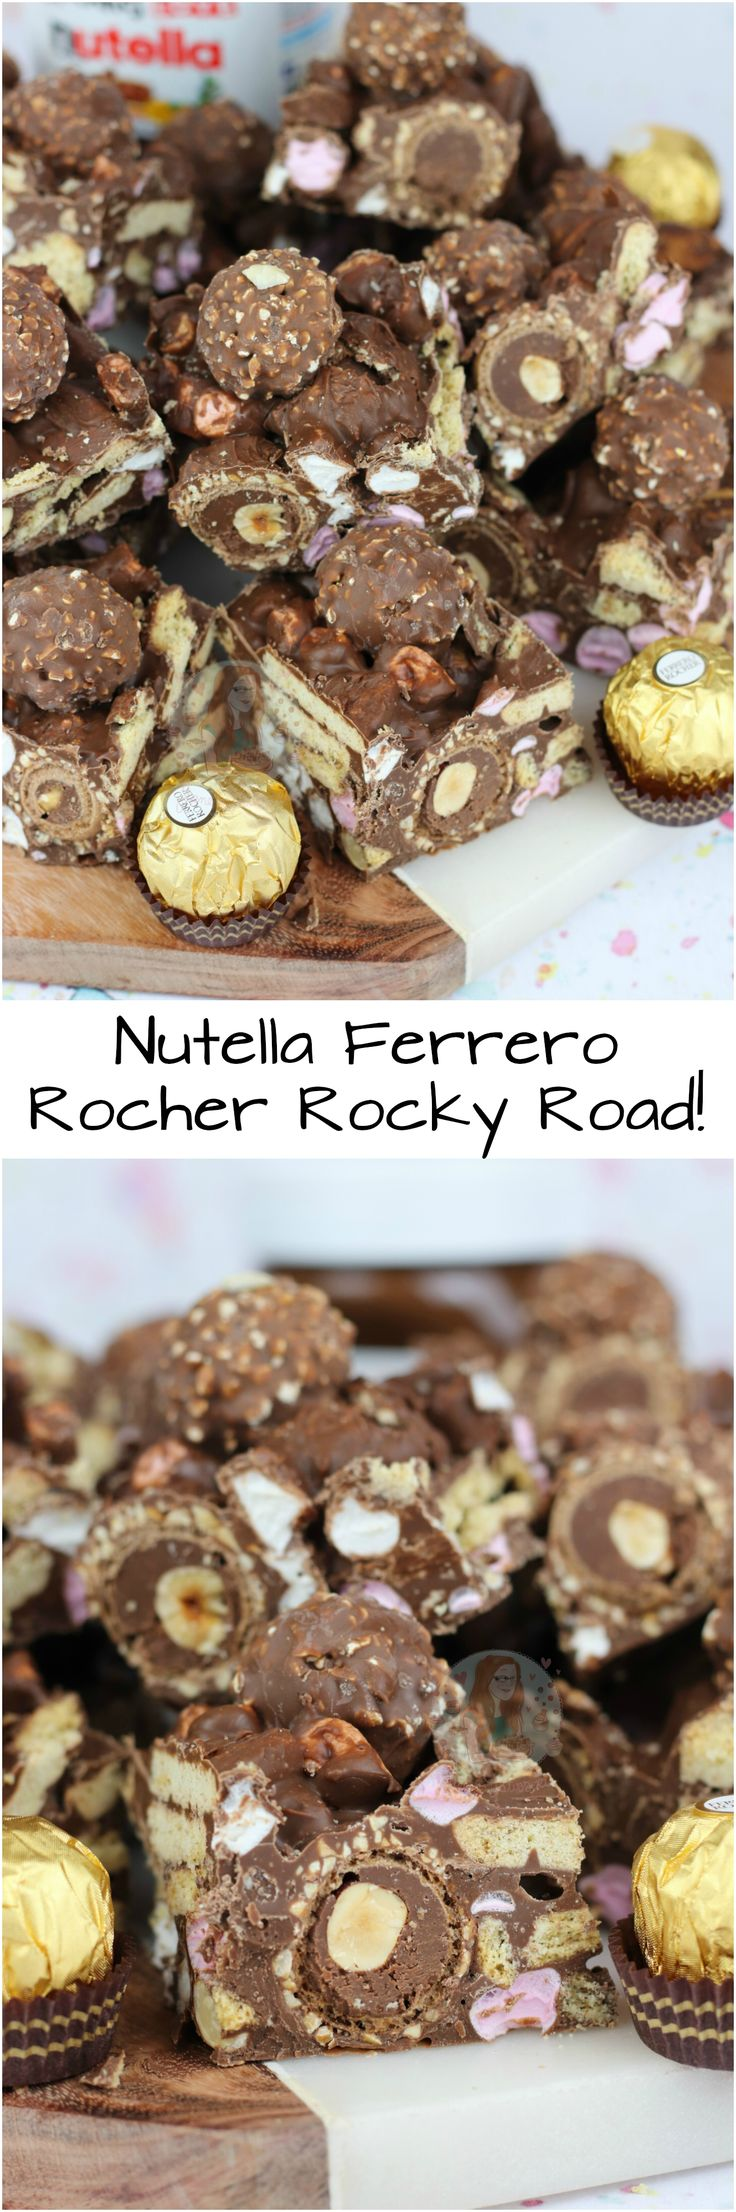 Nutella Rocky Road!! Easy No-Bake Nutella Rocky Road with Ferrero Rocher, Hazelnuts, Digestives, Marshmallows and Nutella!